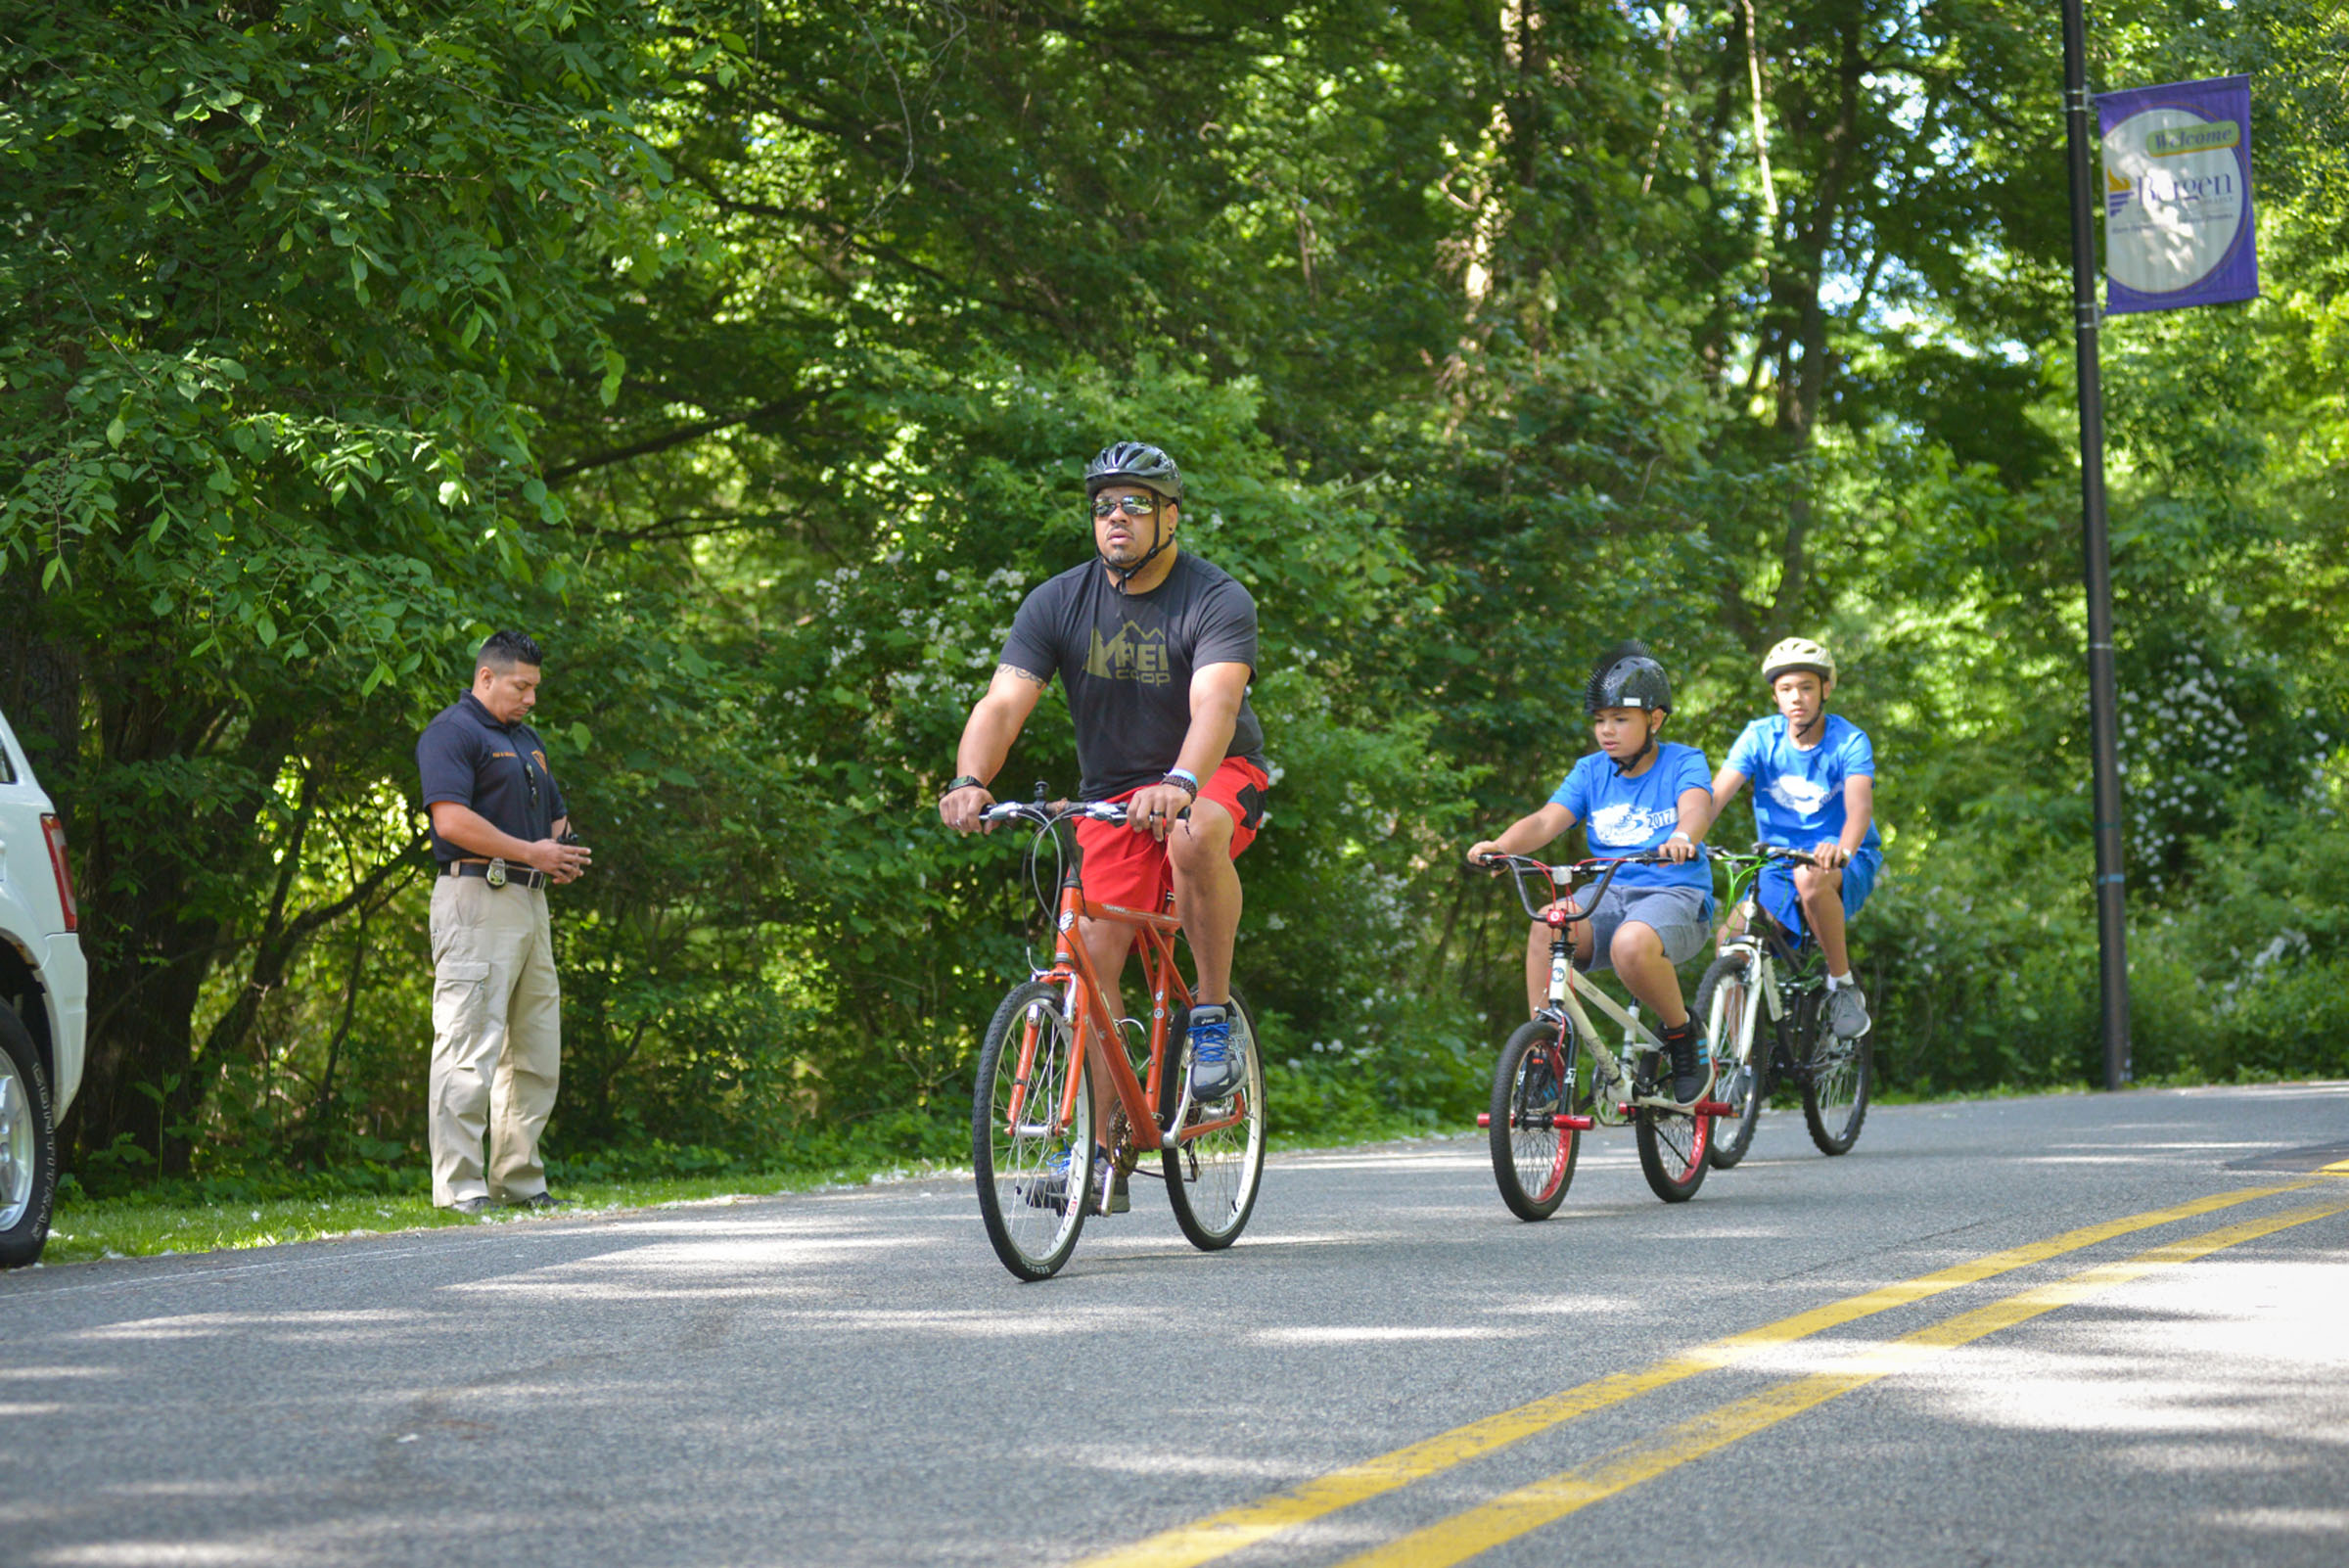 2017-06-04 GTD4A Charity Bike Ride - BCC - Paramus NJ-2048.jpg